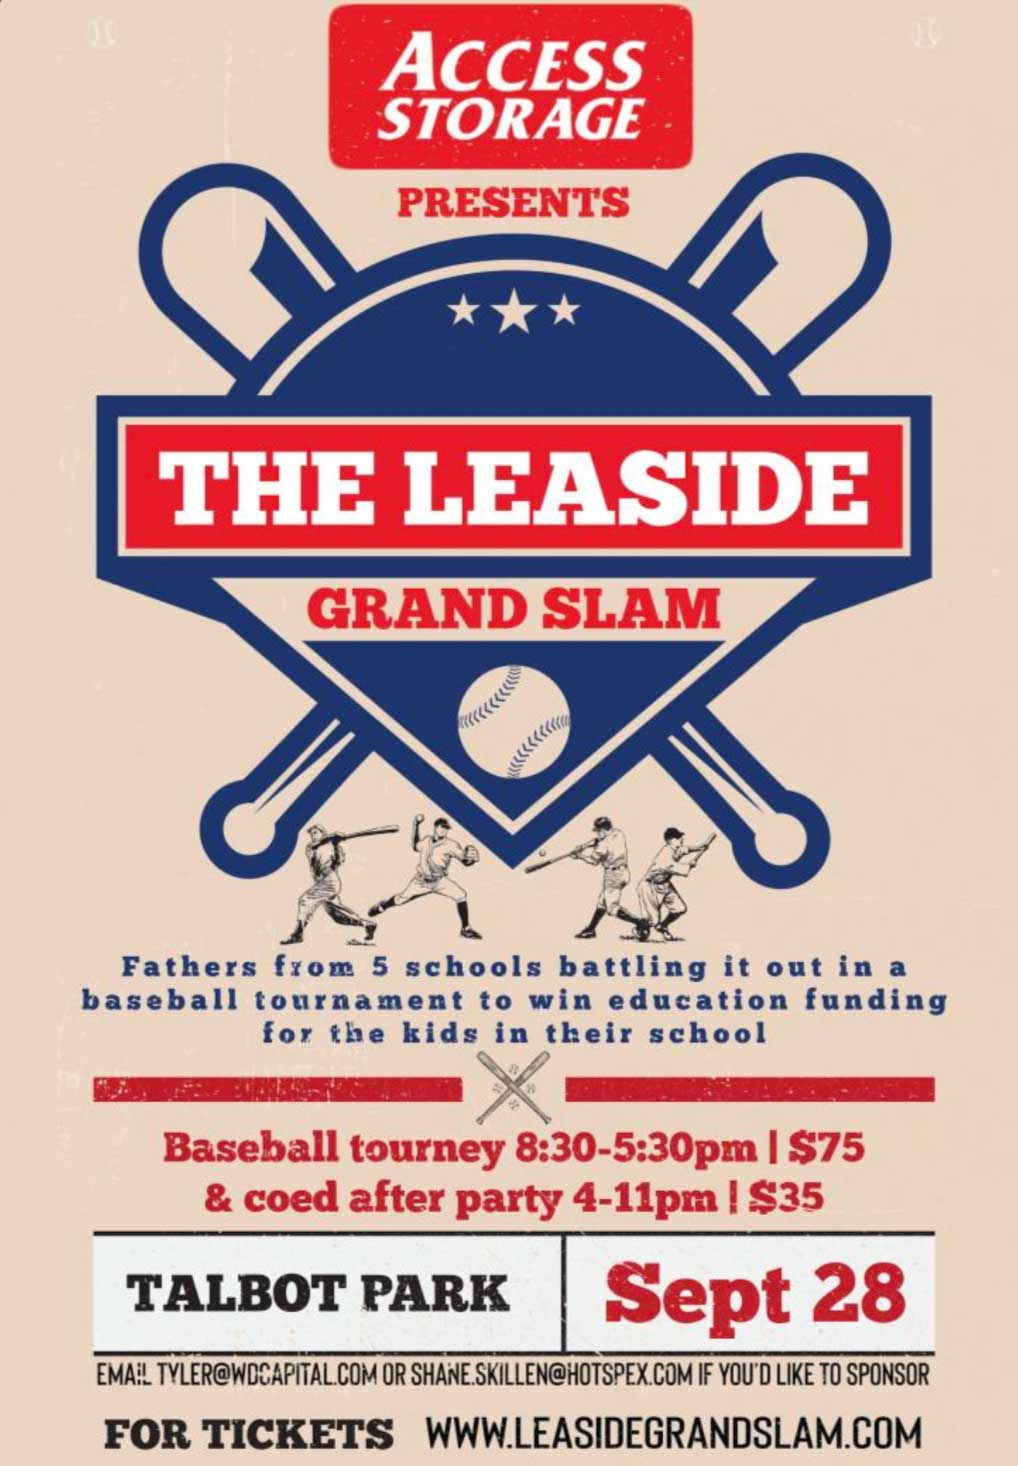 Leaside Grand Slam poster.